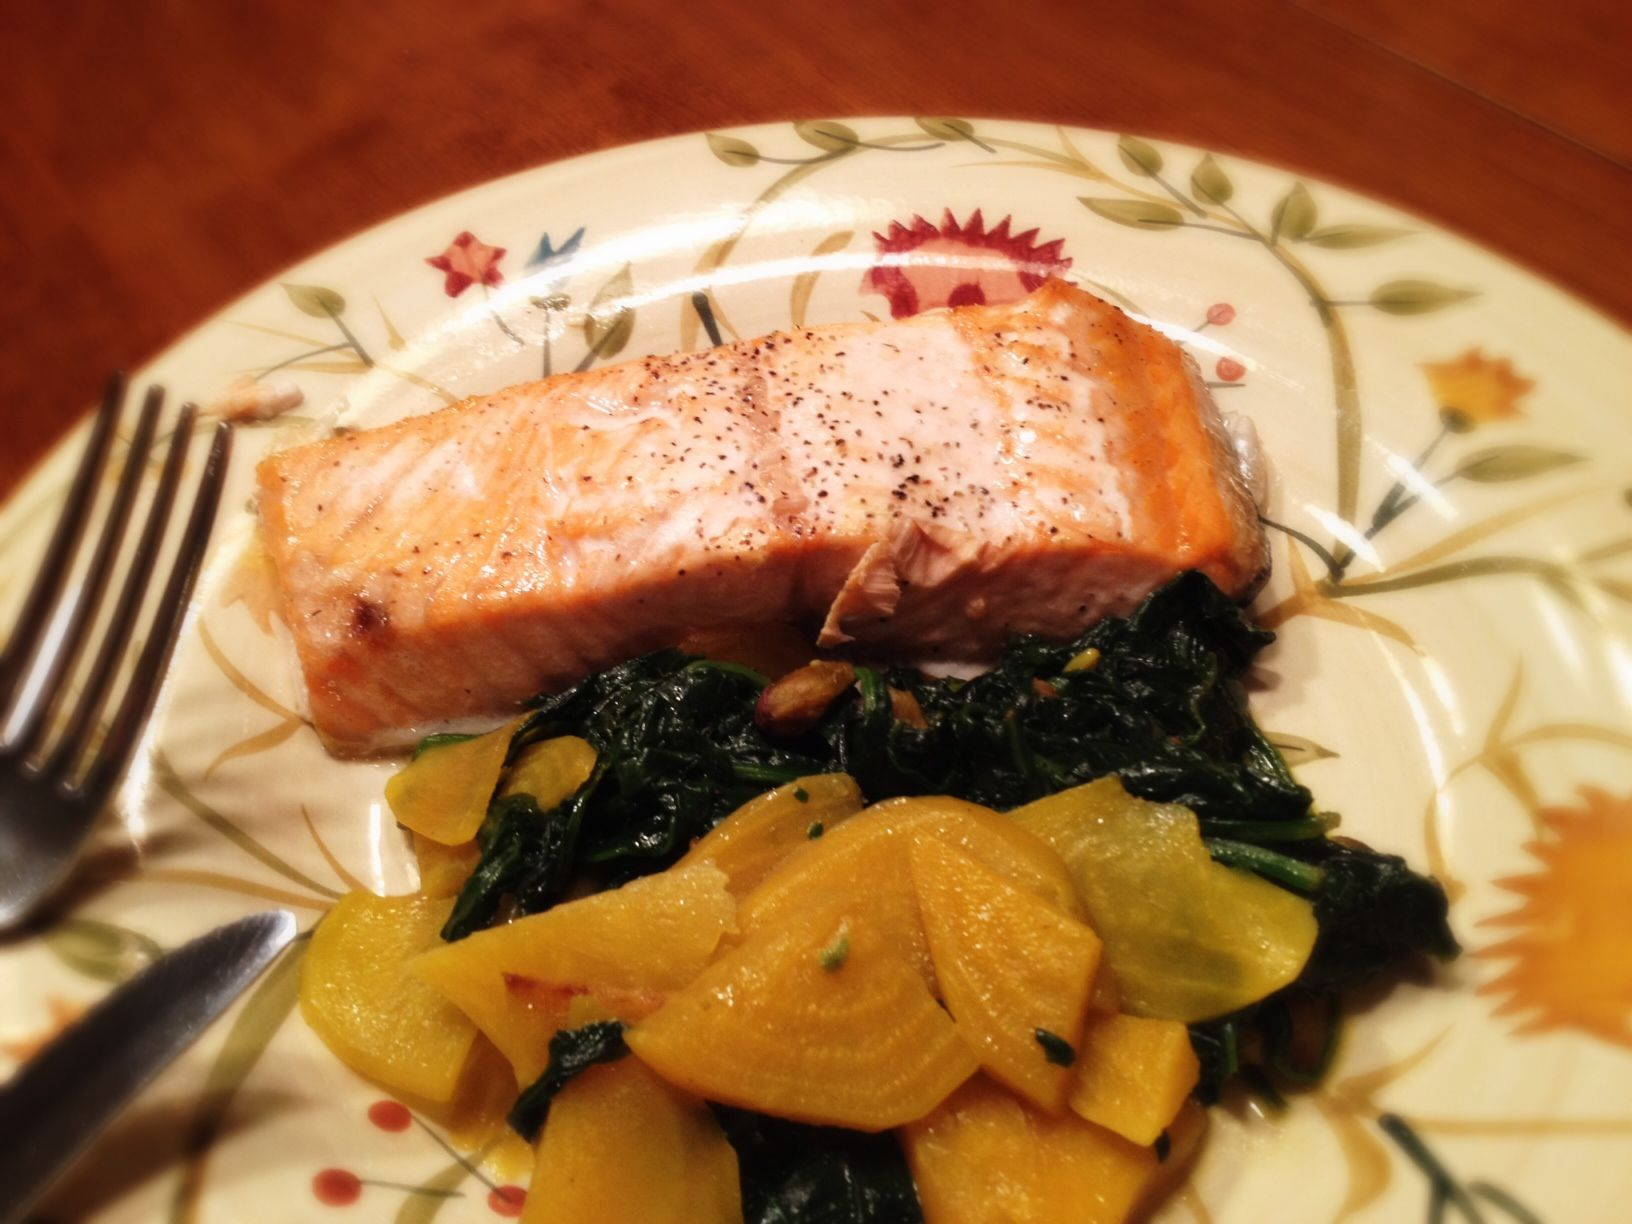 Salmon With Spinach and Golden Beets: 11/26/13